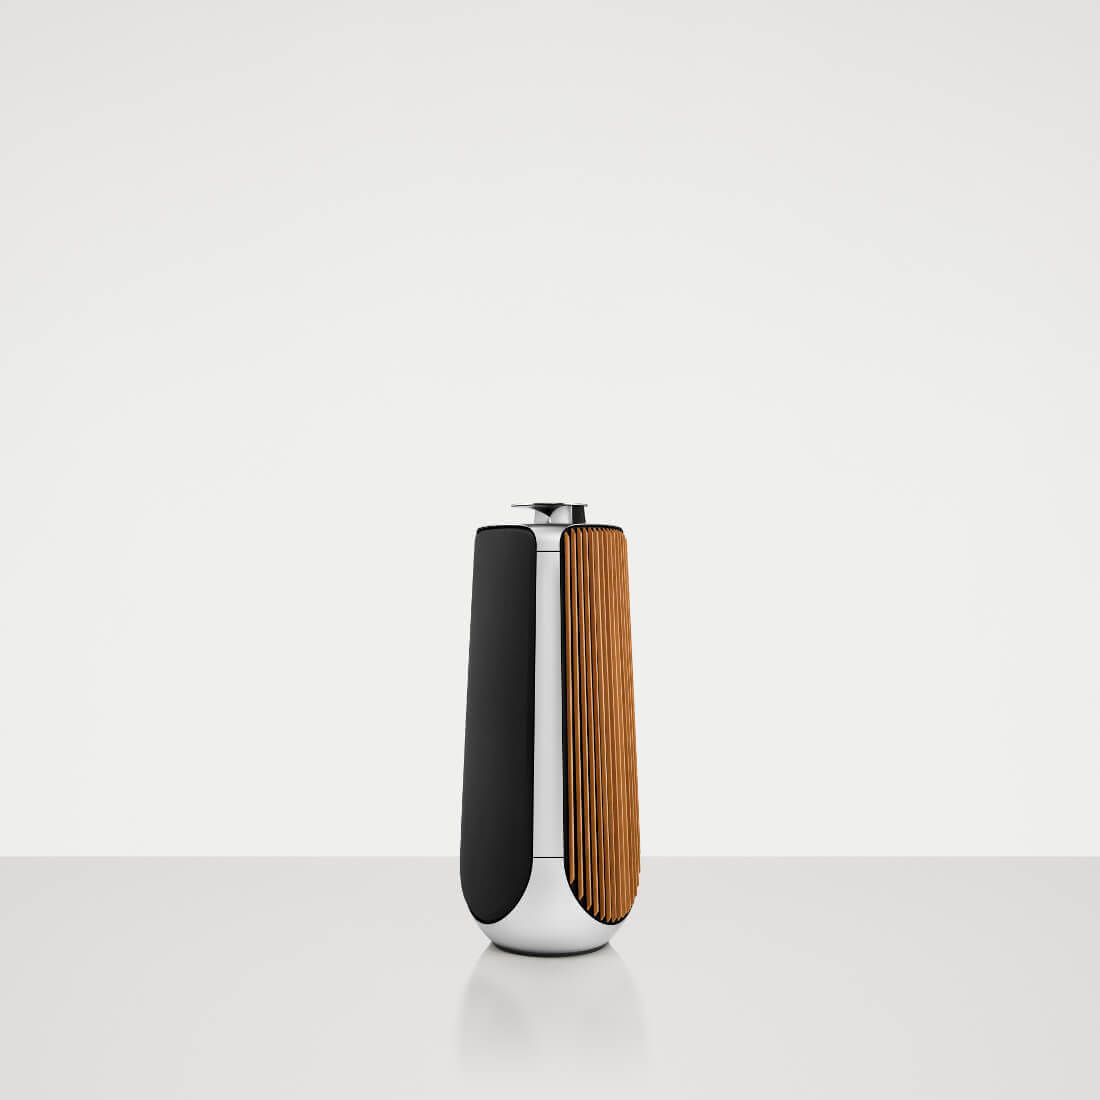 beolab-50-side-view-fabric-lamella-w-lens